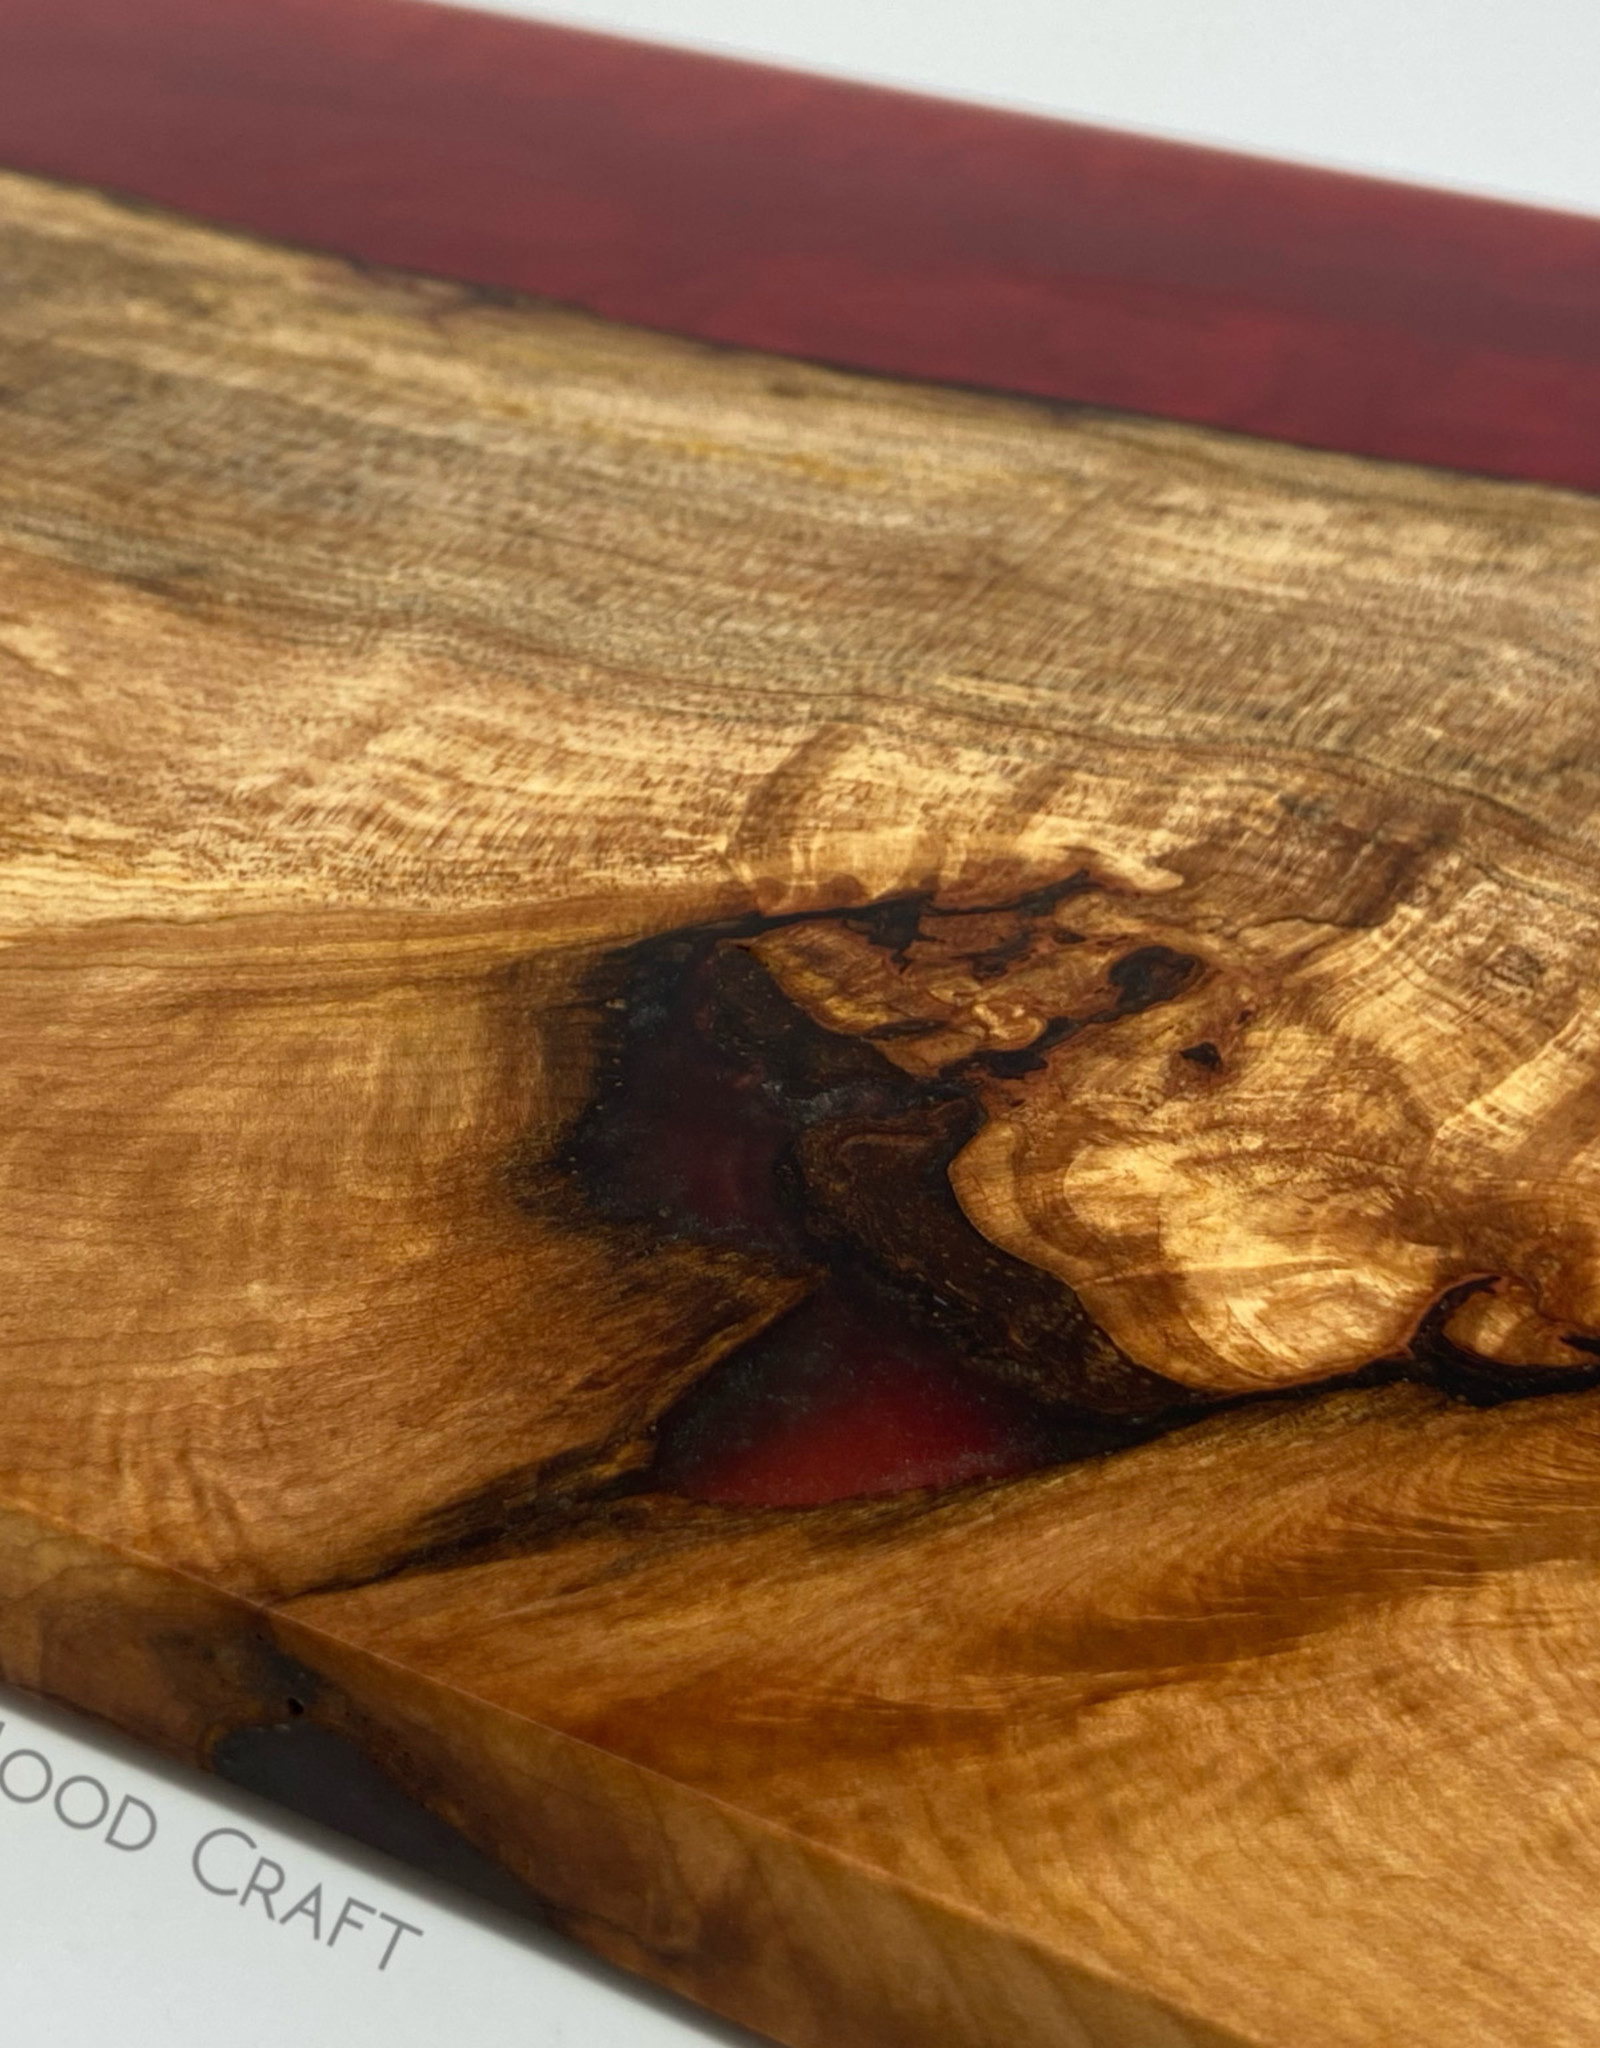 """Mt. Hood Craft - """"Desert Sky"""" - Wood and Resin Serving Tray"""